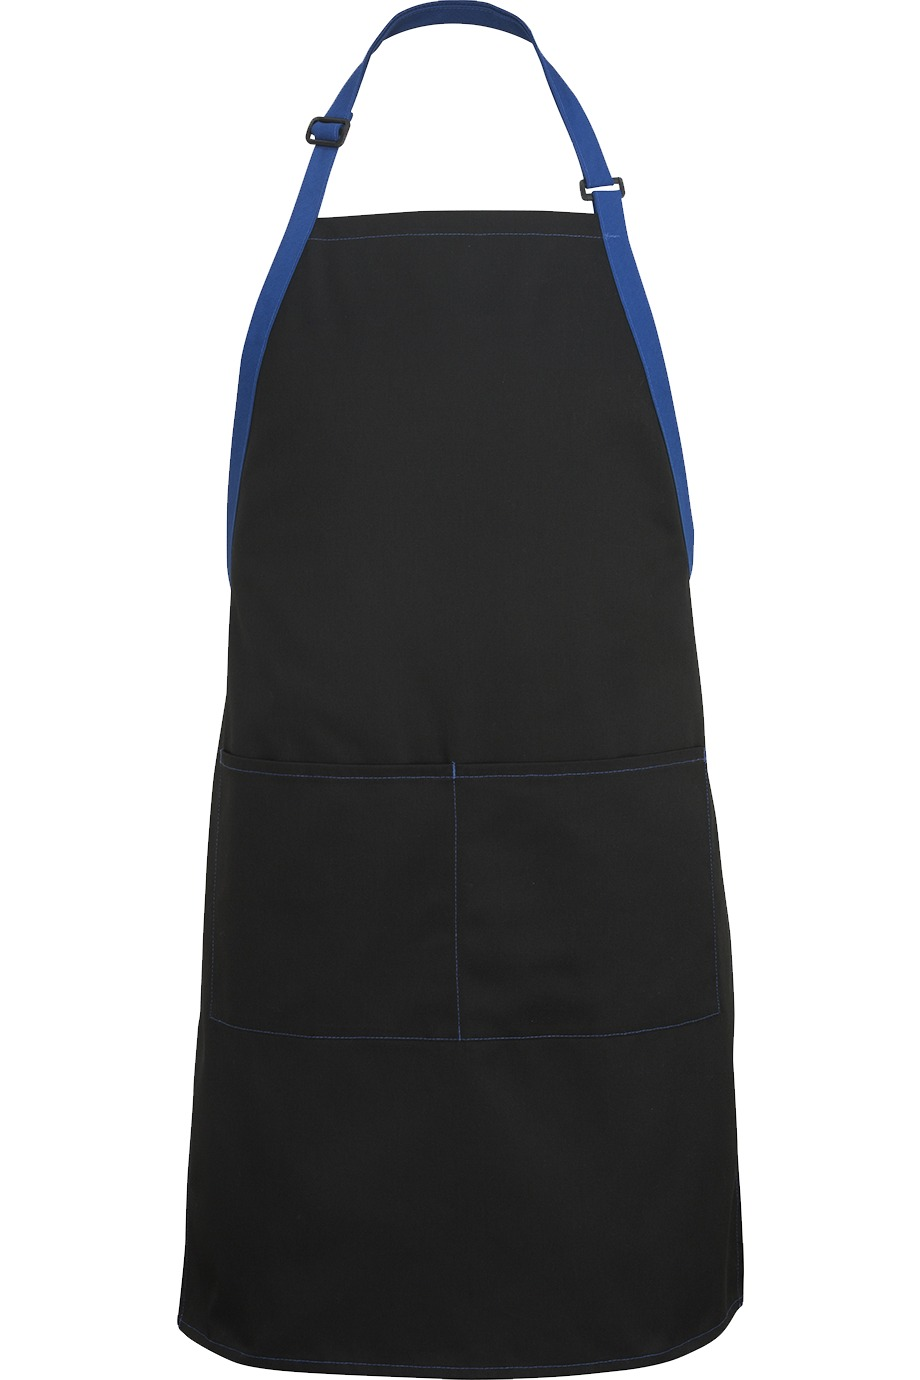 Edwards Garment 9028 - Bib Apron-Color Blocked